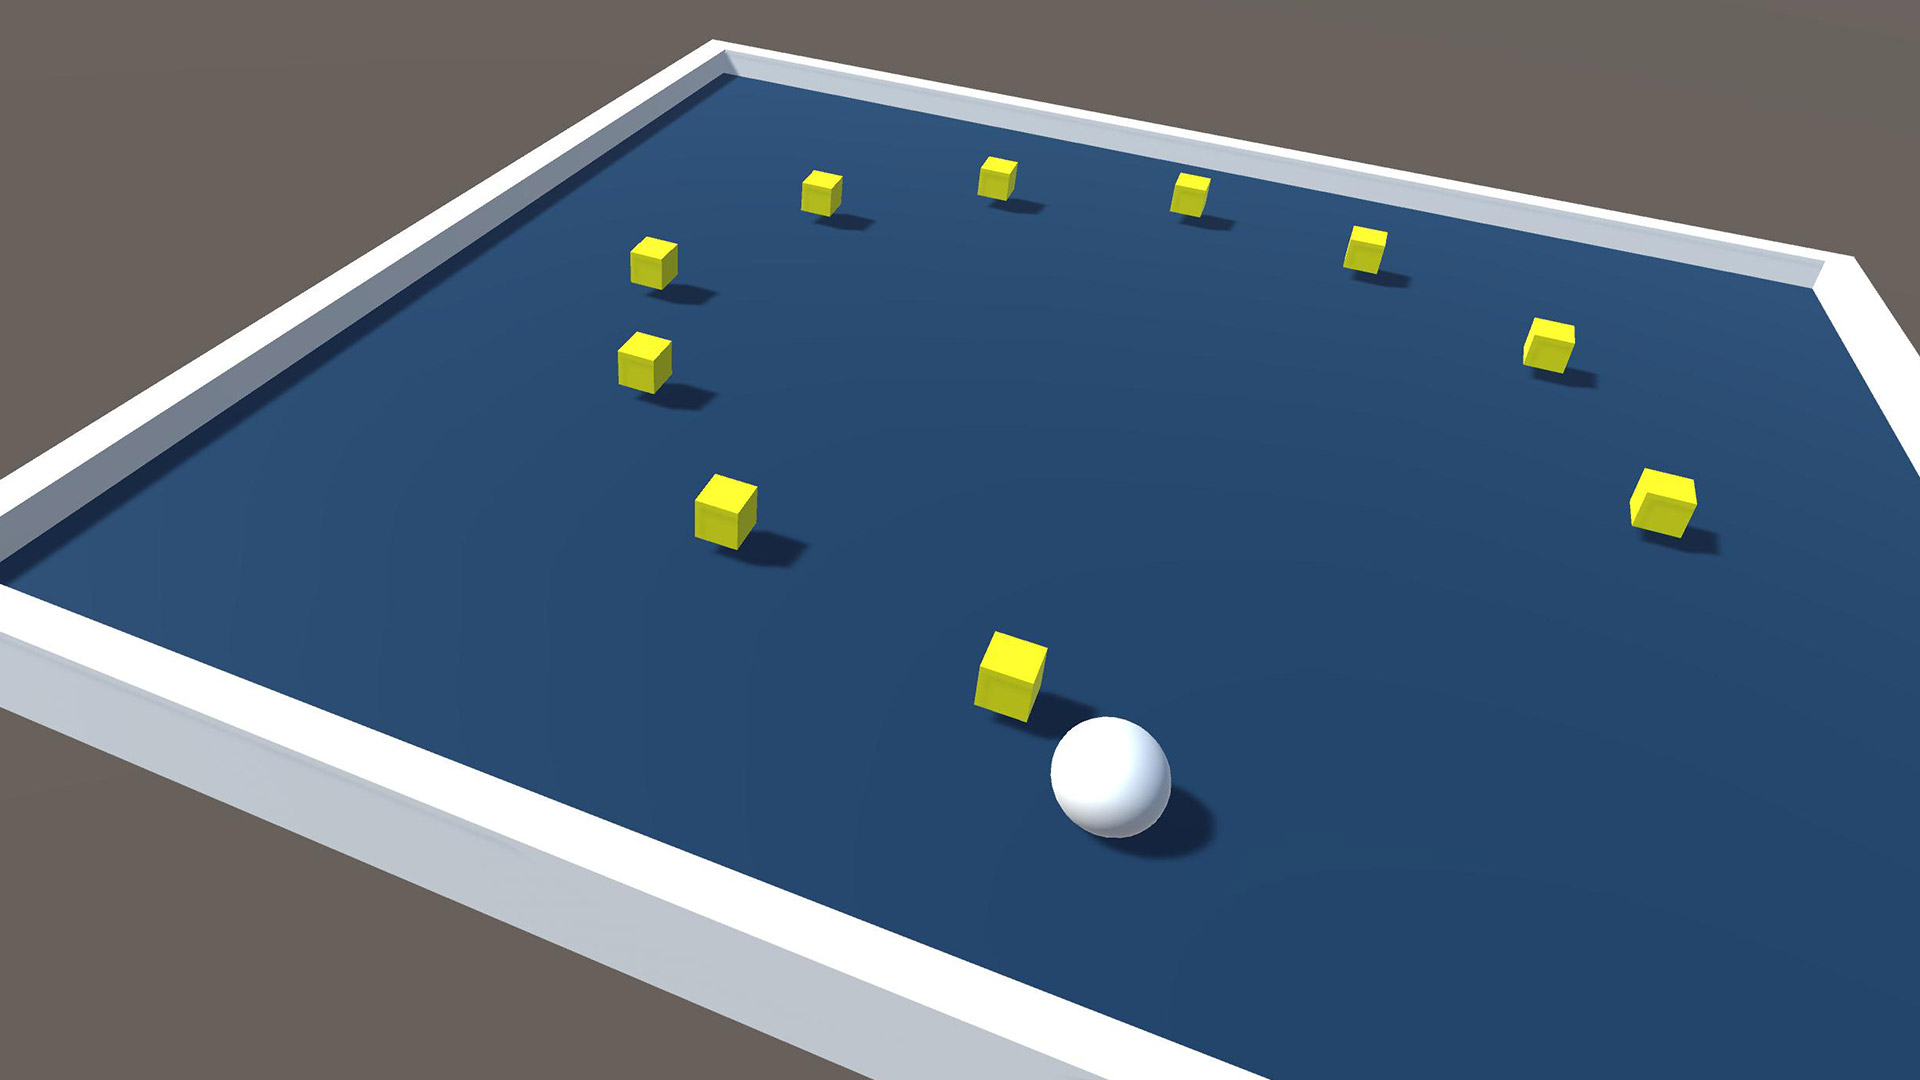 Introduction to Roll-a-ball - Unity Learn